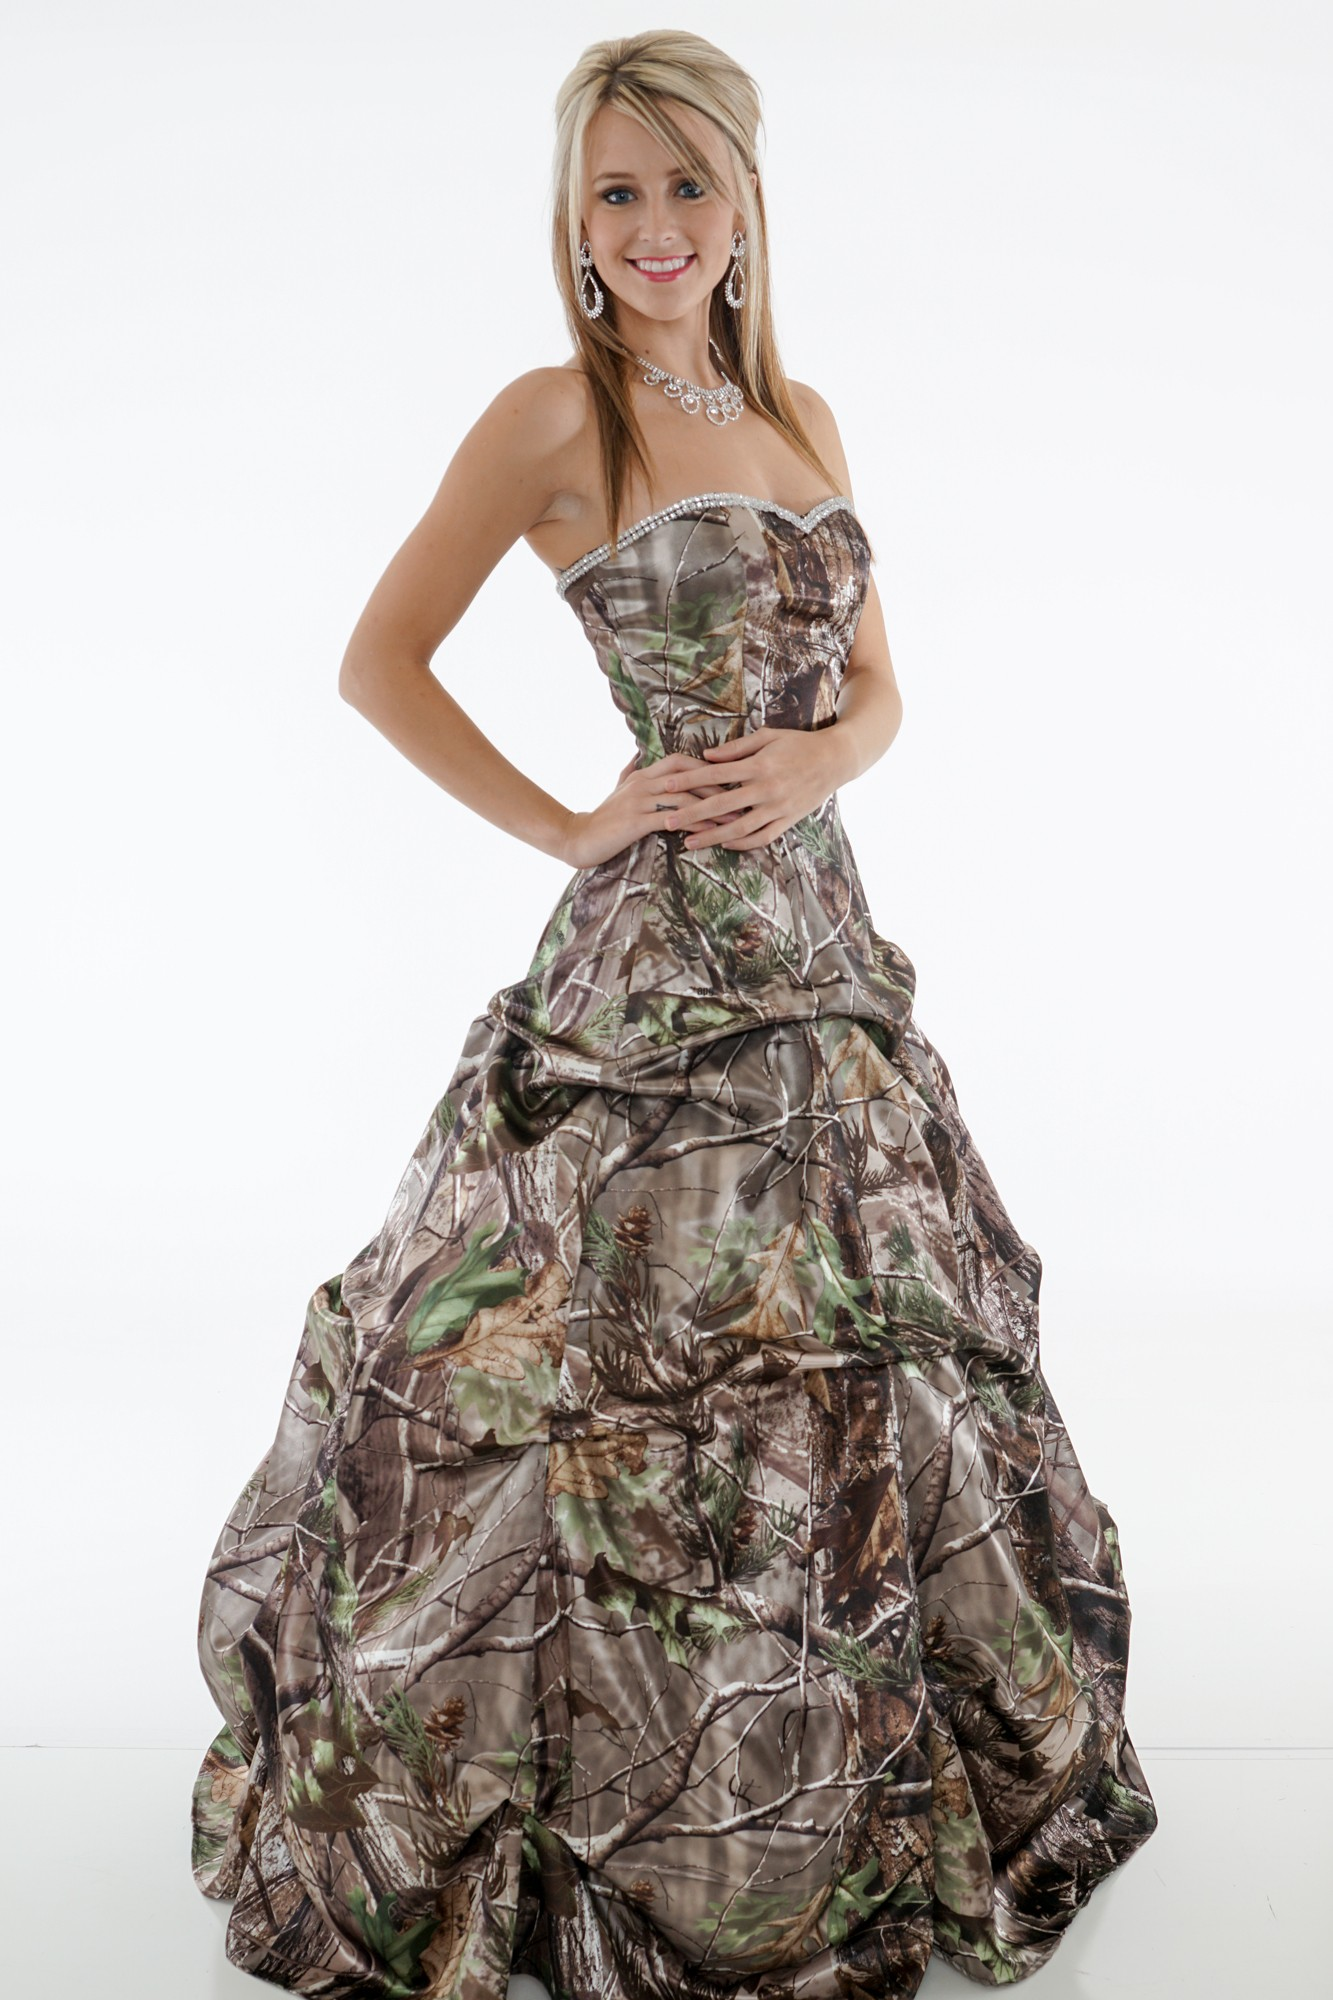 Camo dress for any occasion camouflage prom wedding for Camo ribbon for wedding dress